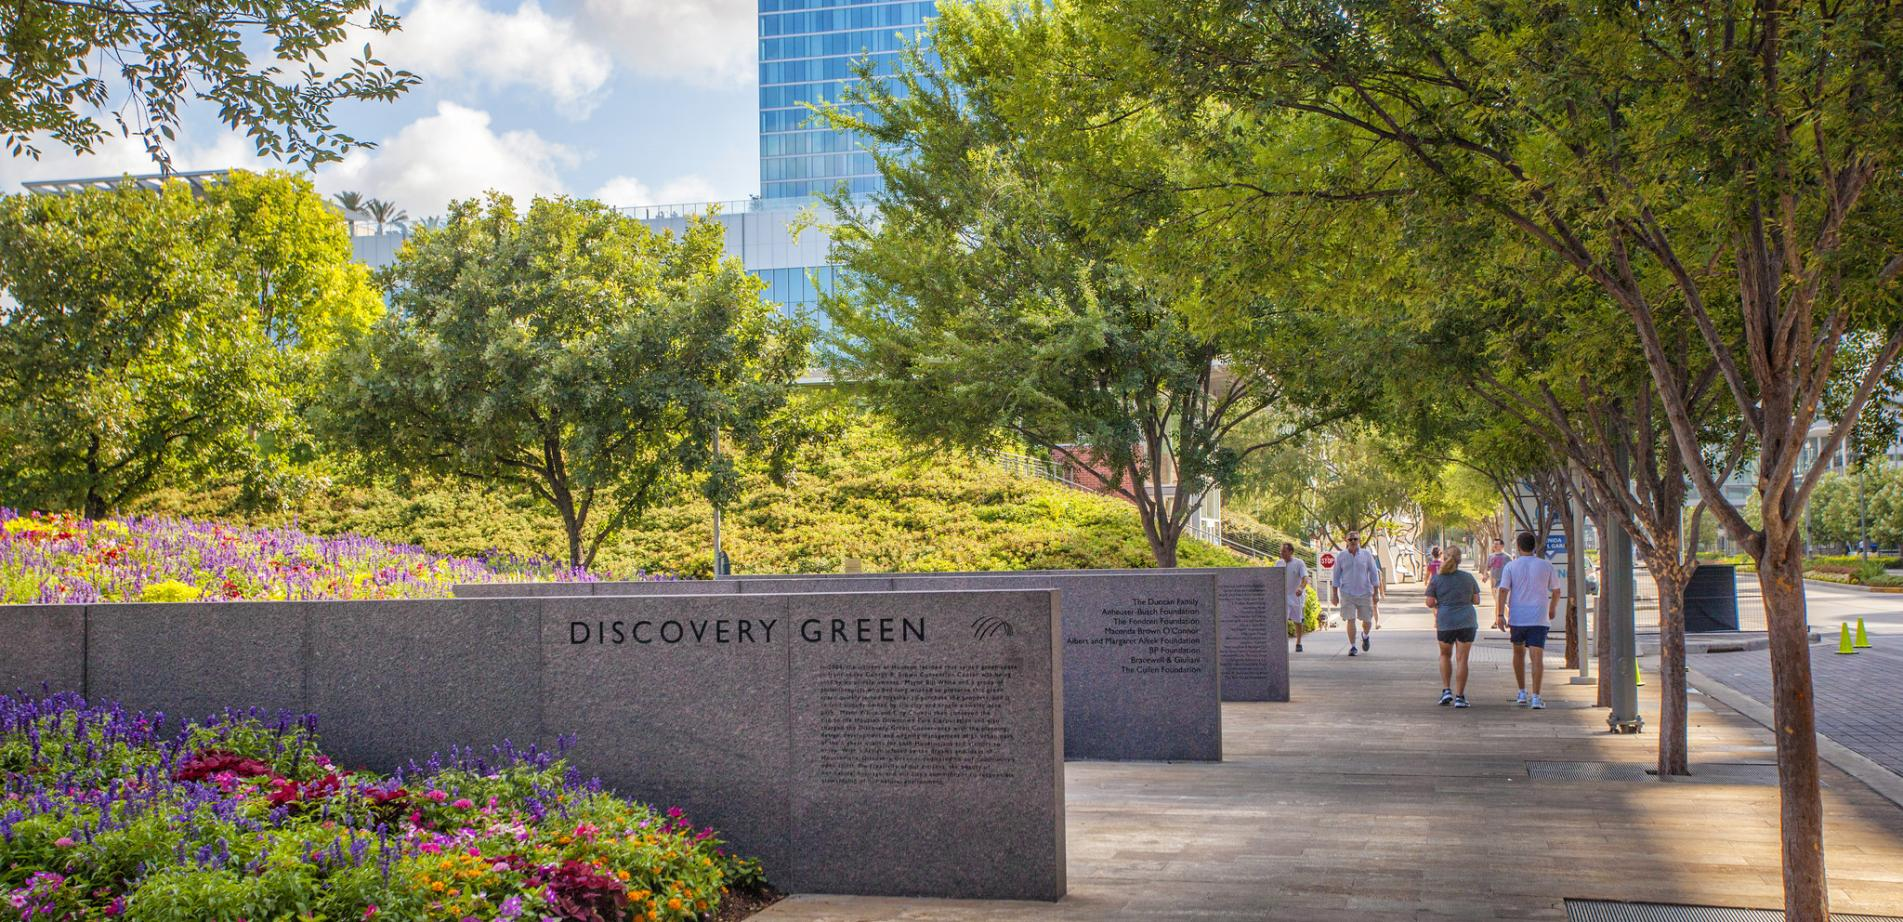 Discovery Green